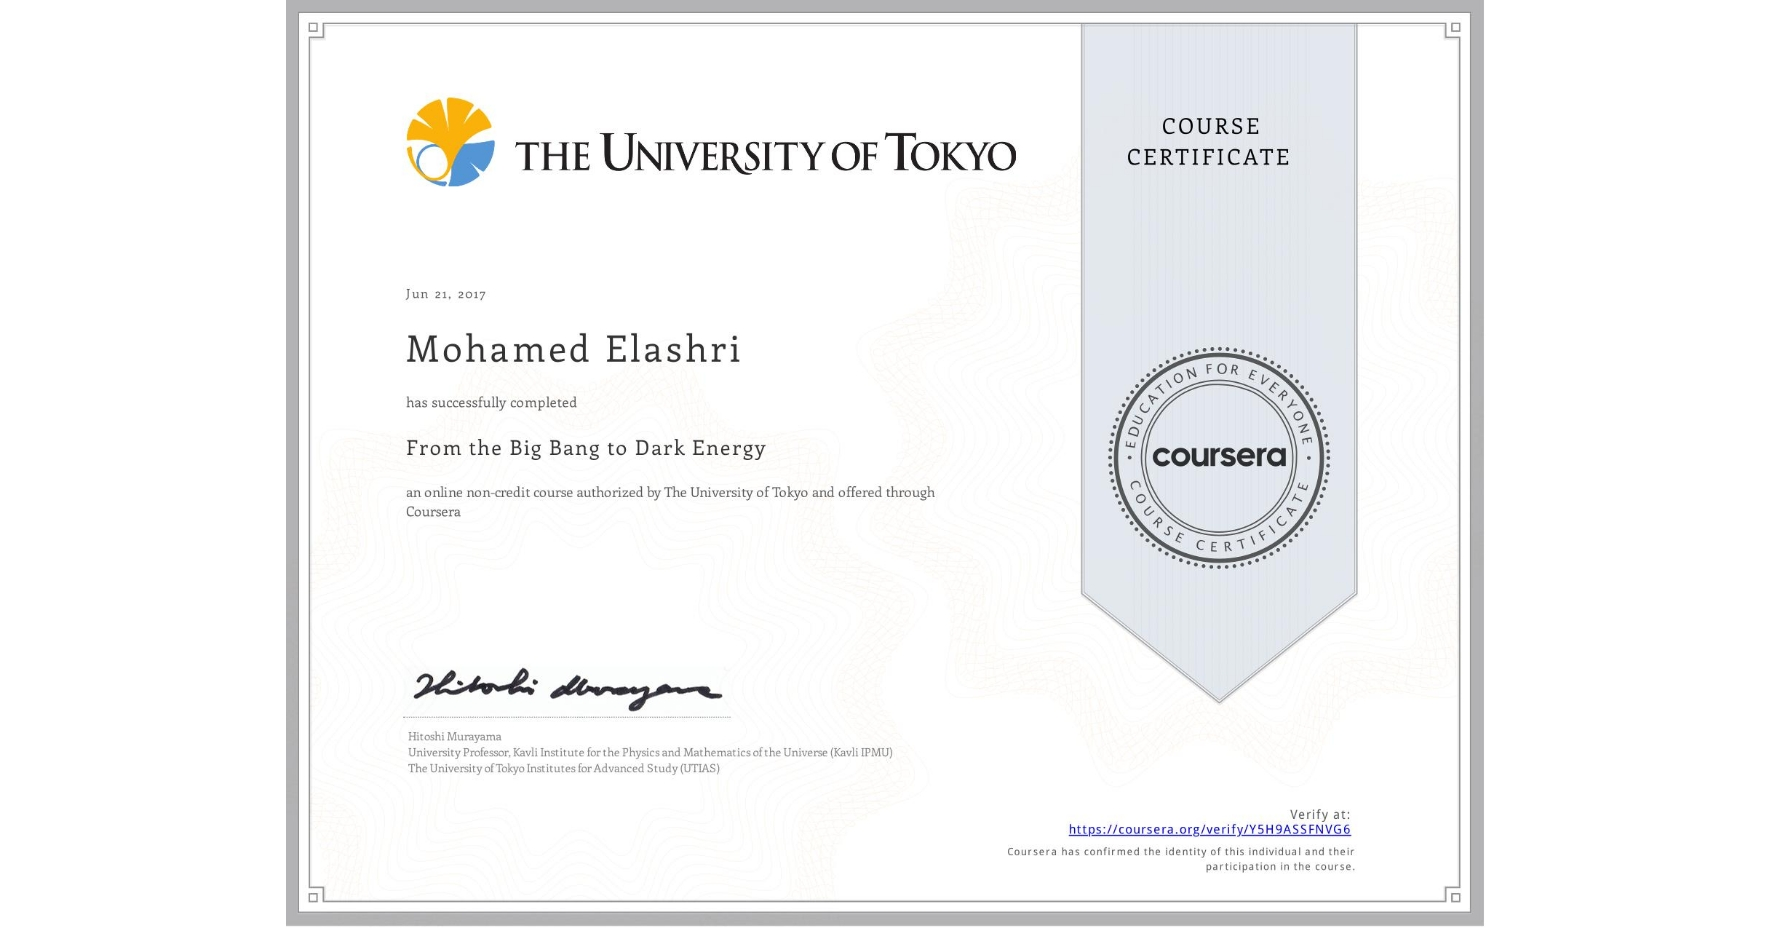 View certificate for Mohamed Elashri, From the Big Bang to Dark Energy, an online non-credit course authorized by The University of Tokyo and offered through Coursera